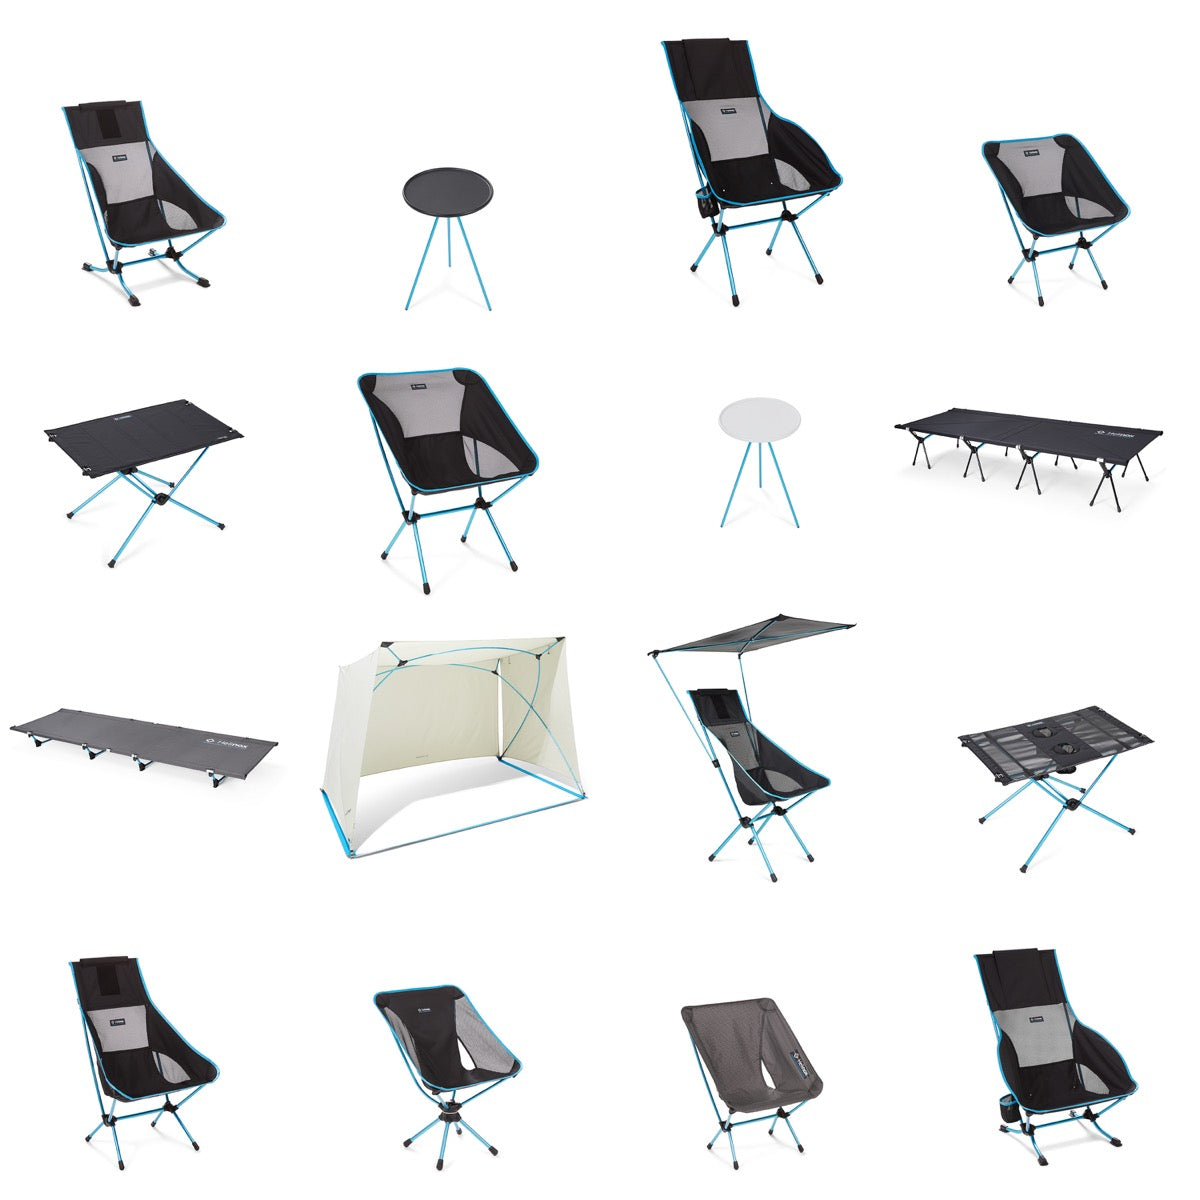 More chairs, more options...